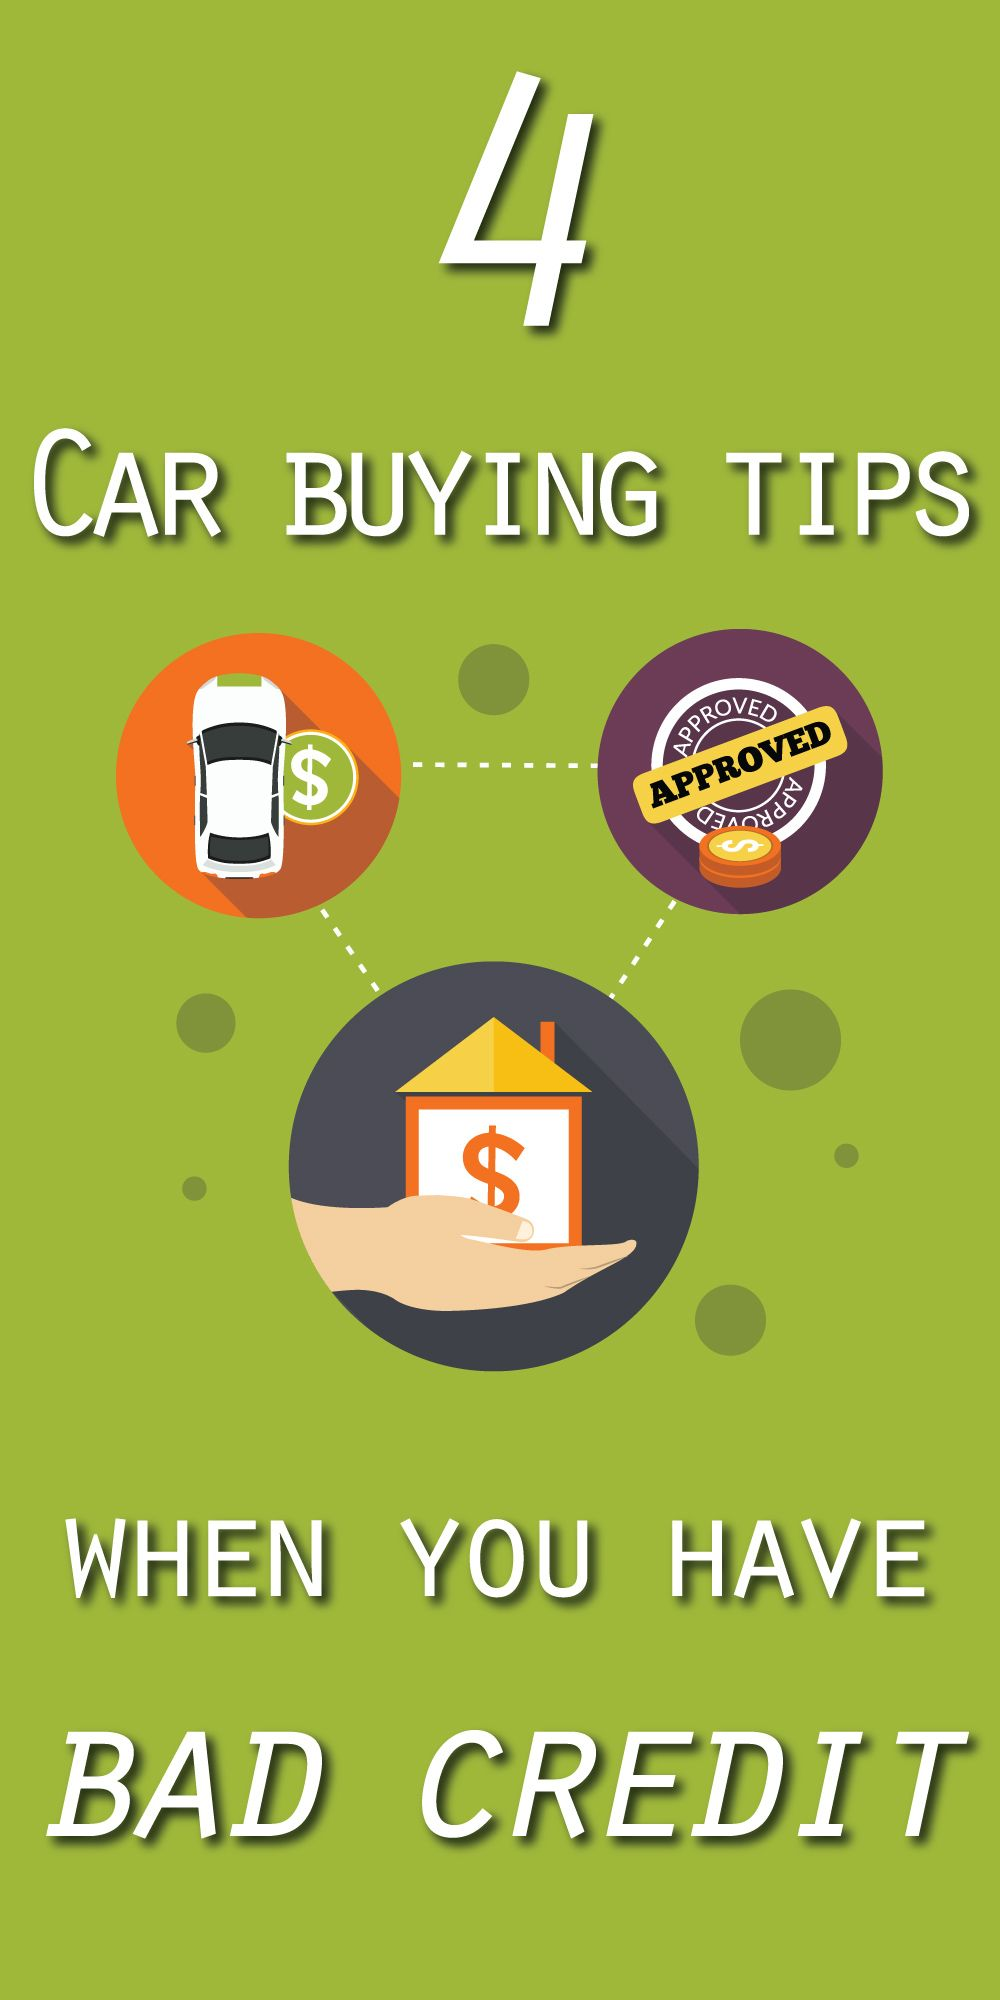 How Do I Get An Auto Loan With Bad Credit? AutoPayPlus